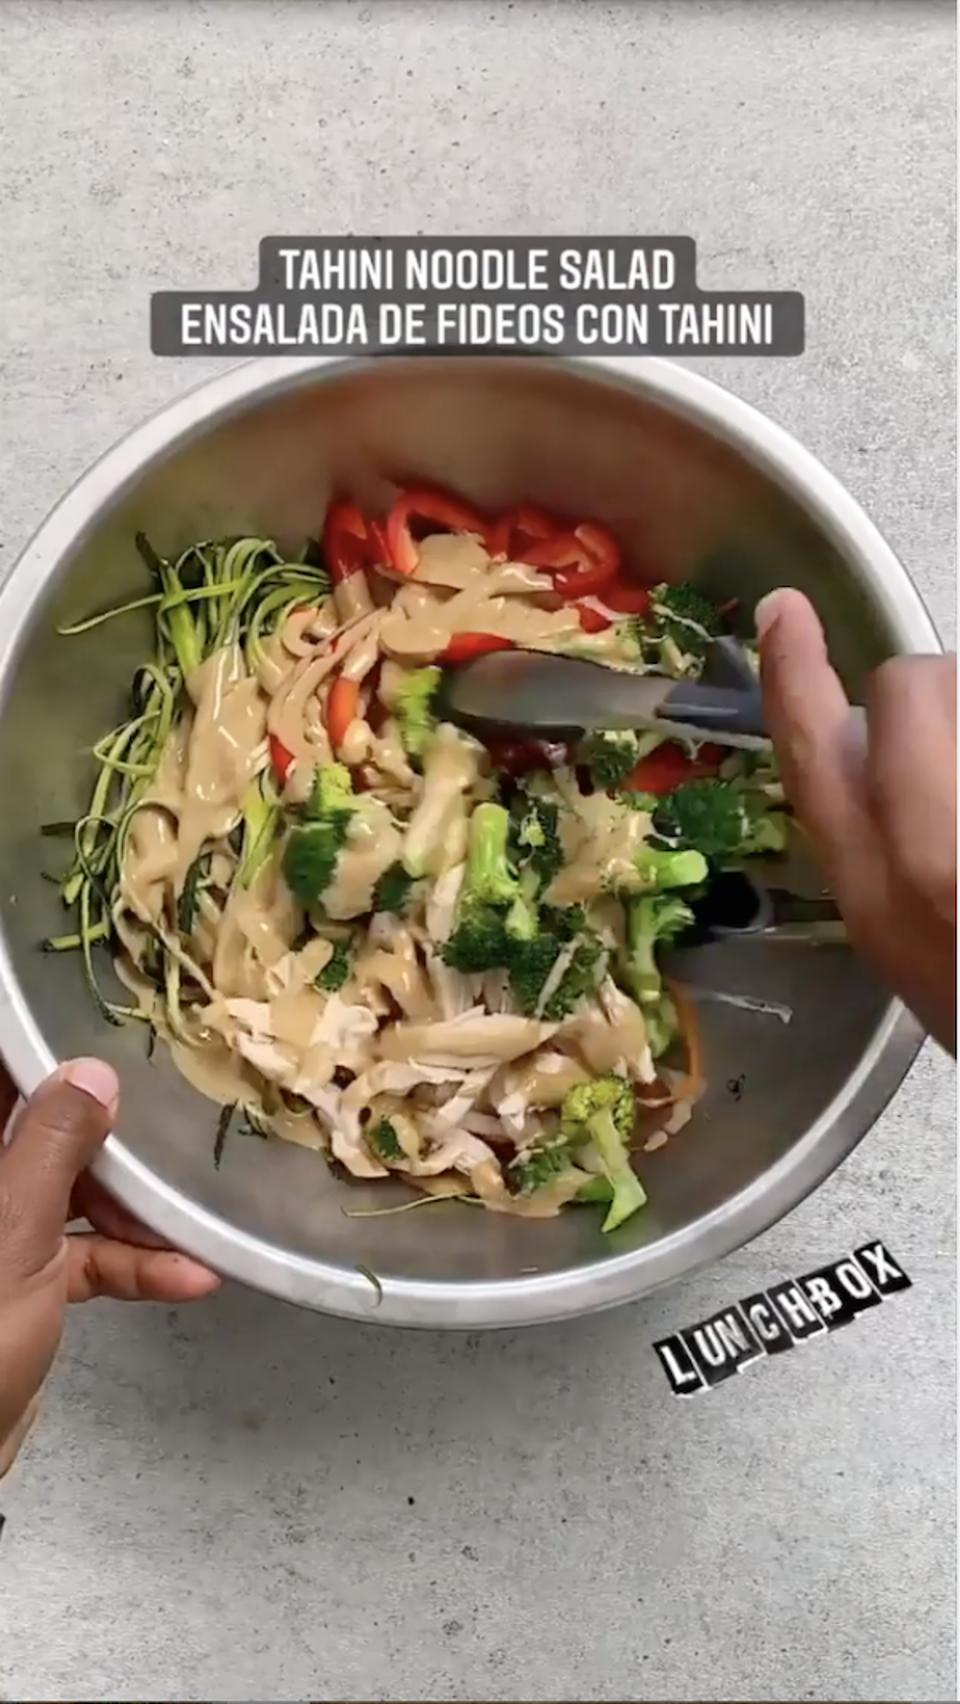 A snapshot of Kevin Curry's recipe Reel showing how to make tahini noodle salad.